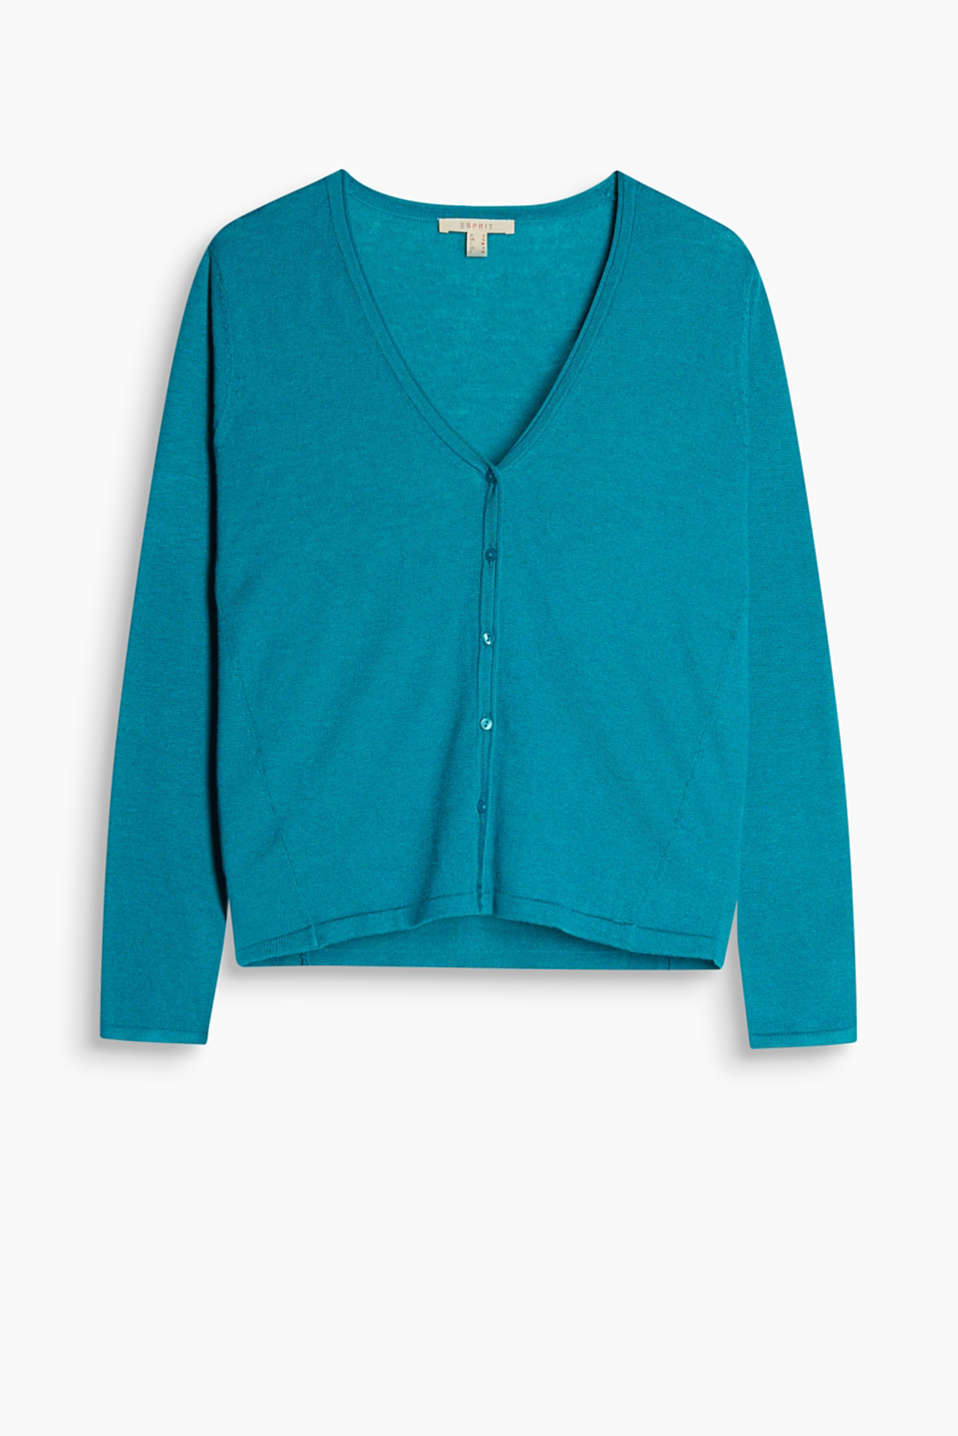 In trendy new colours: silky fine knit basic cardigan